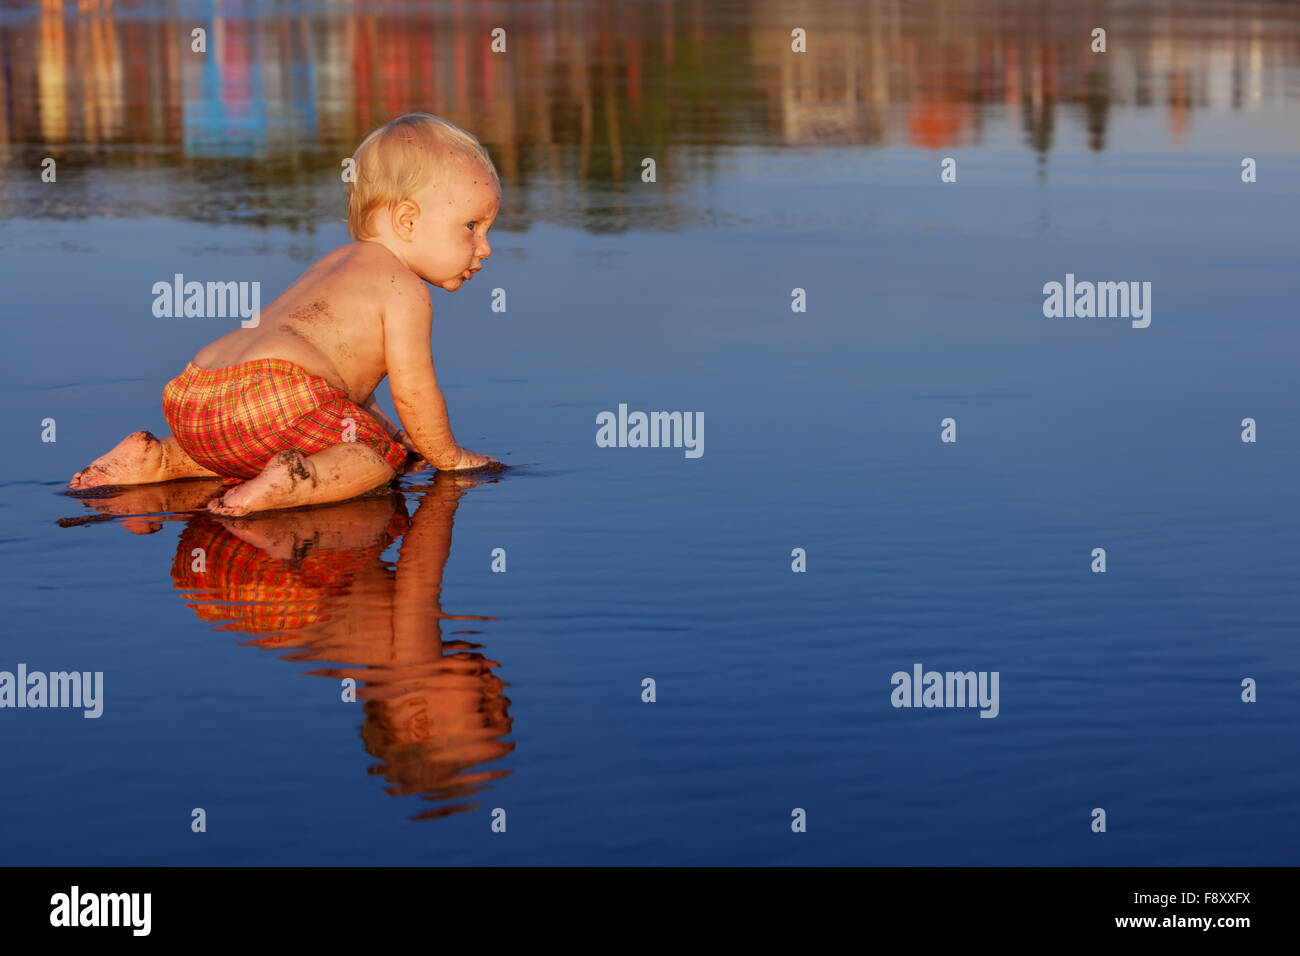 On sunset beach funny baby boy crawling on smoth black wet sand to sea surf for swimming in waves. - Stock Image